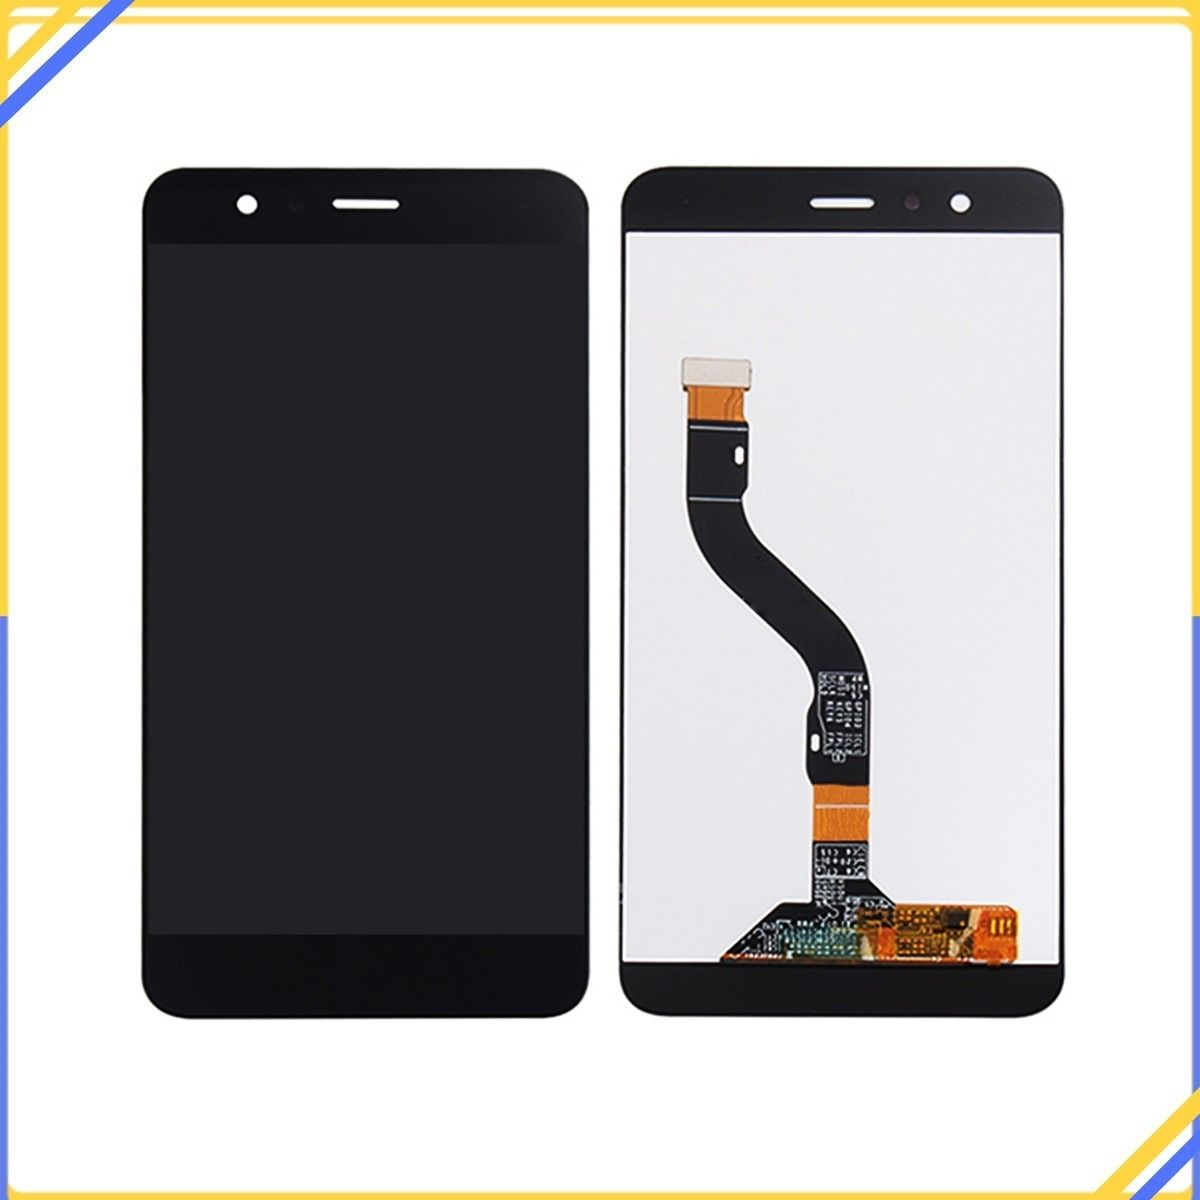 For Huawei P10 Lite WAS-LX2J WAS-LX2 WAS-LX1A WAS-L03T LCD Display Touch Screen Phone Digitizer Assembly Replacement Parts